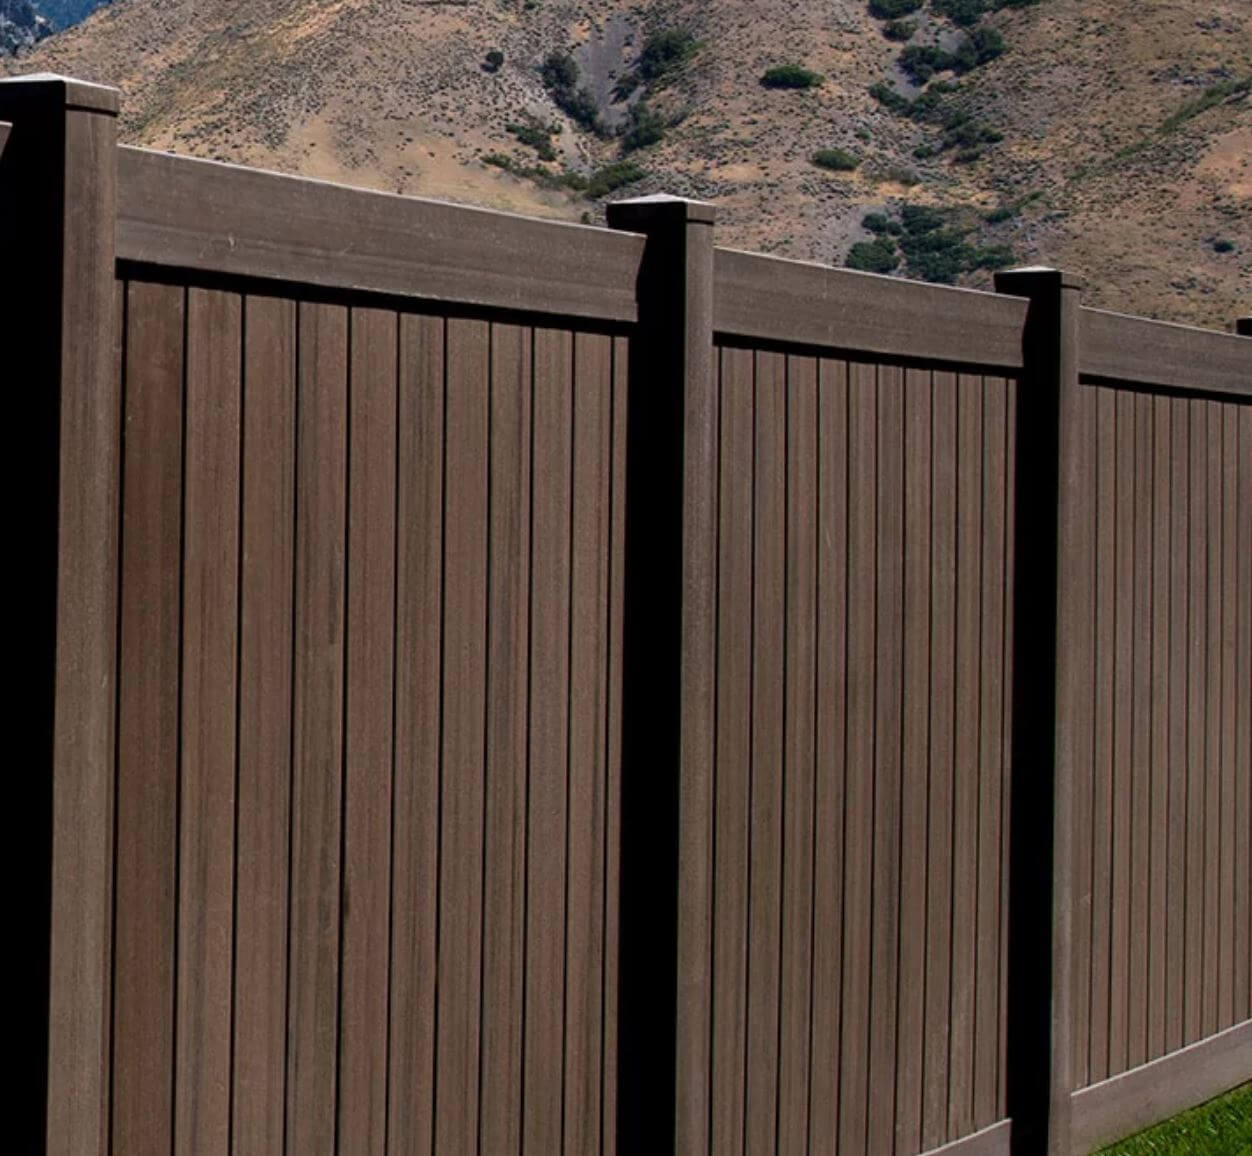 Diy Vinyl Fence Supplies Textured Vinyl Fencing And Wood Grain Vinyl Fencing Differences